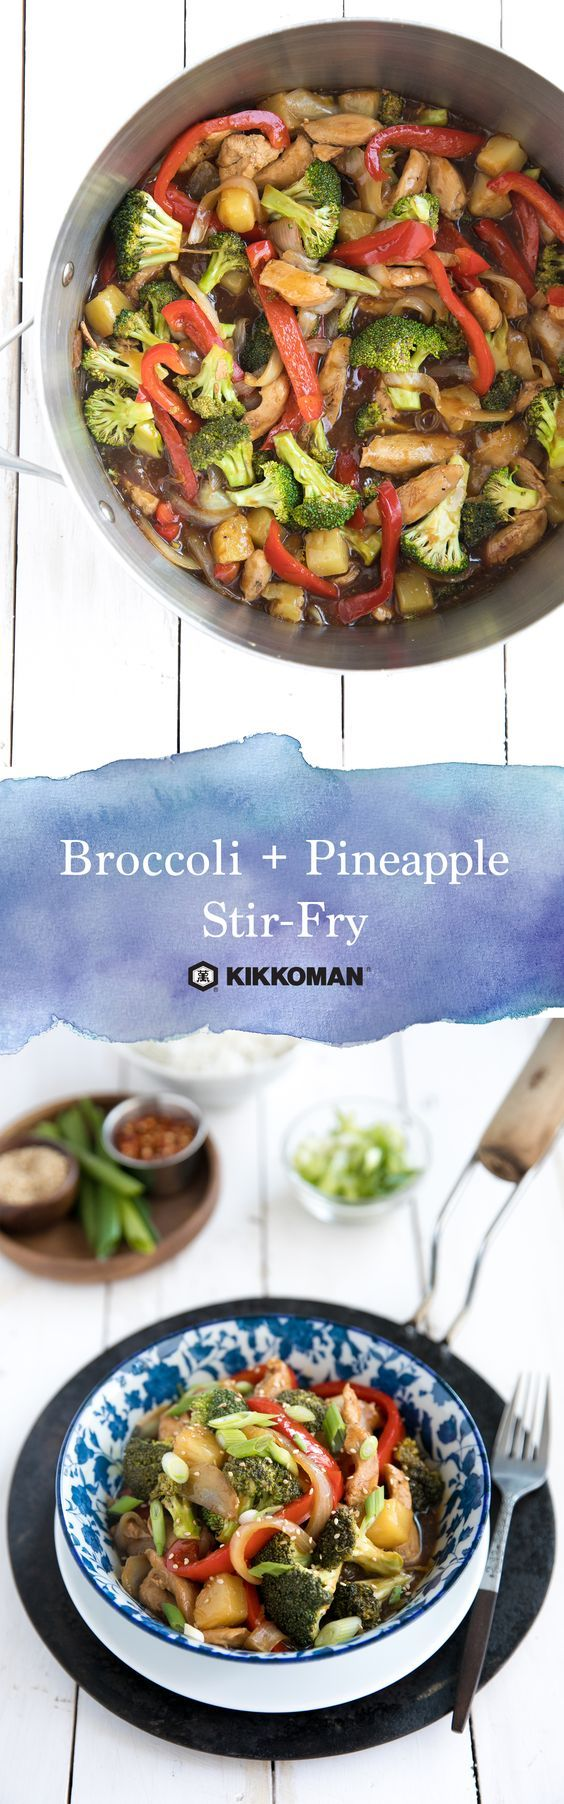 Stir-fry recipes make life easy and scrumptious! This one pan meal combines broccoli, bell peppers, pineapple, onion, and chicken, then smothers them in a tasty homemade sweet and savory sauce with Kikkoman®️ Less Sodium Soy Sauce and Kikkoman®️ Stir-Fry Sauce. Just 11 simple ingredients! | Take a look around on the Kikkoman USA website and find more amazing new recipe ideas.